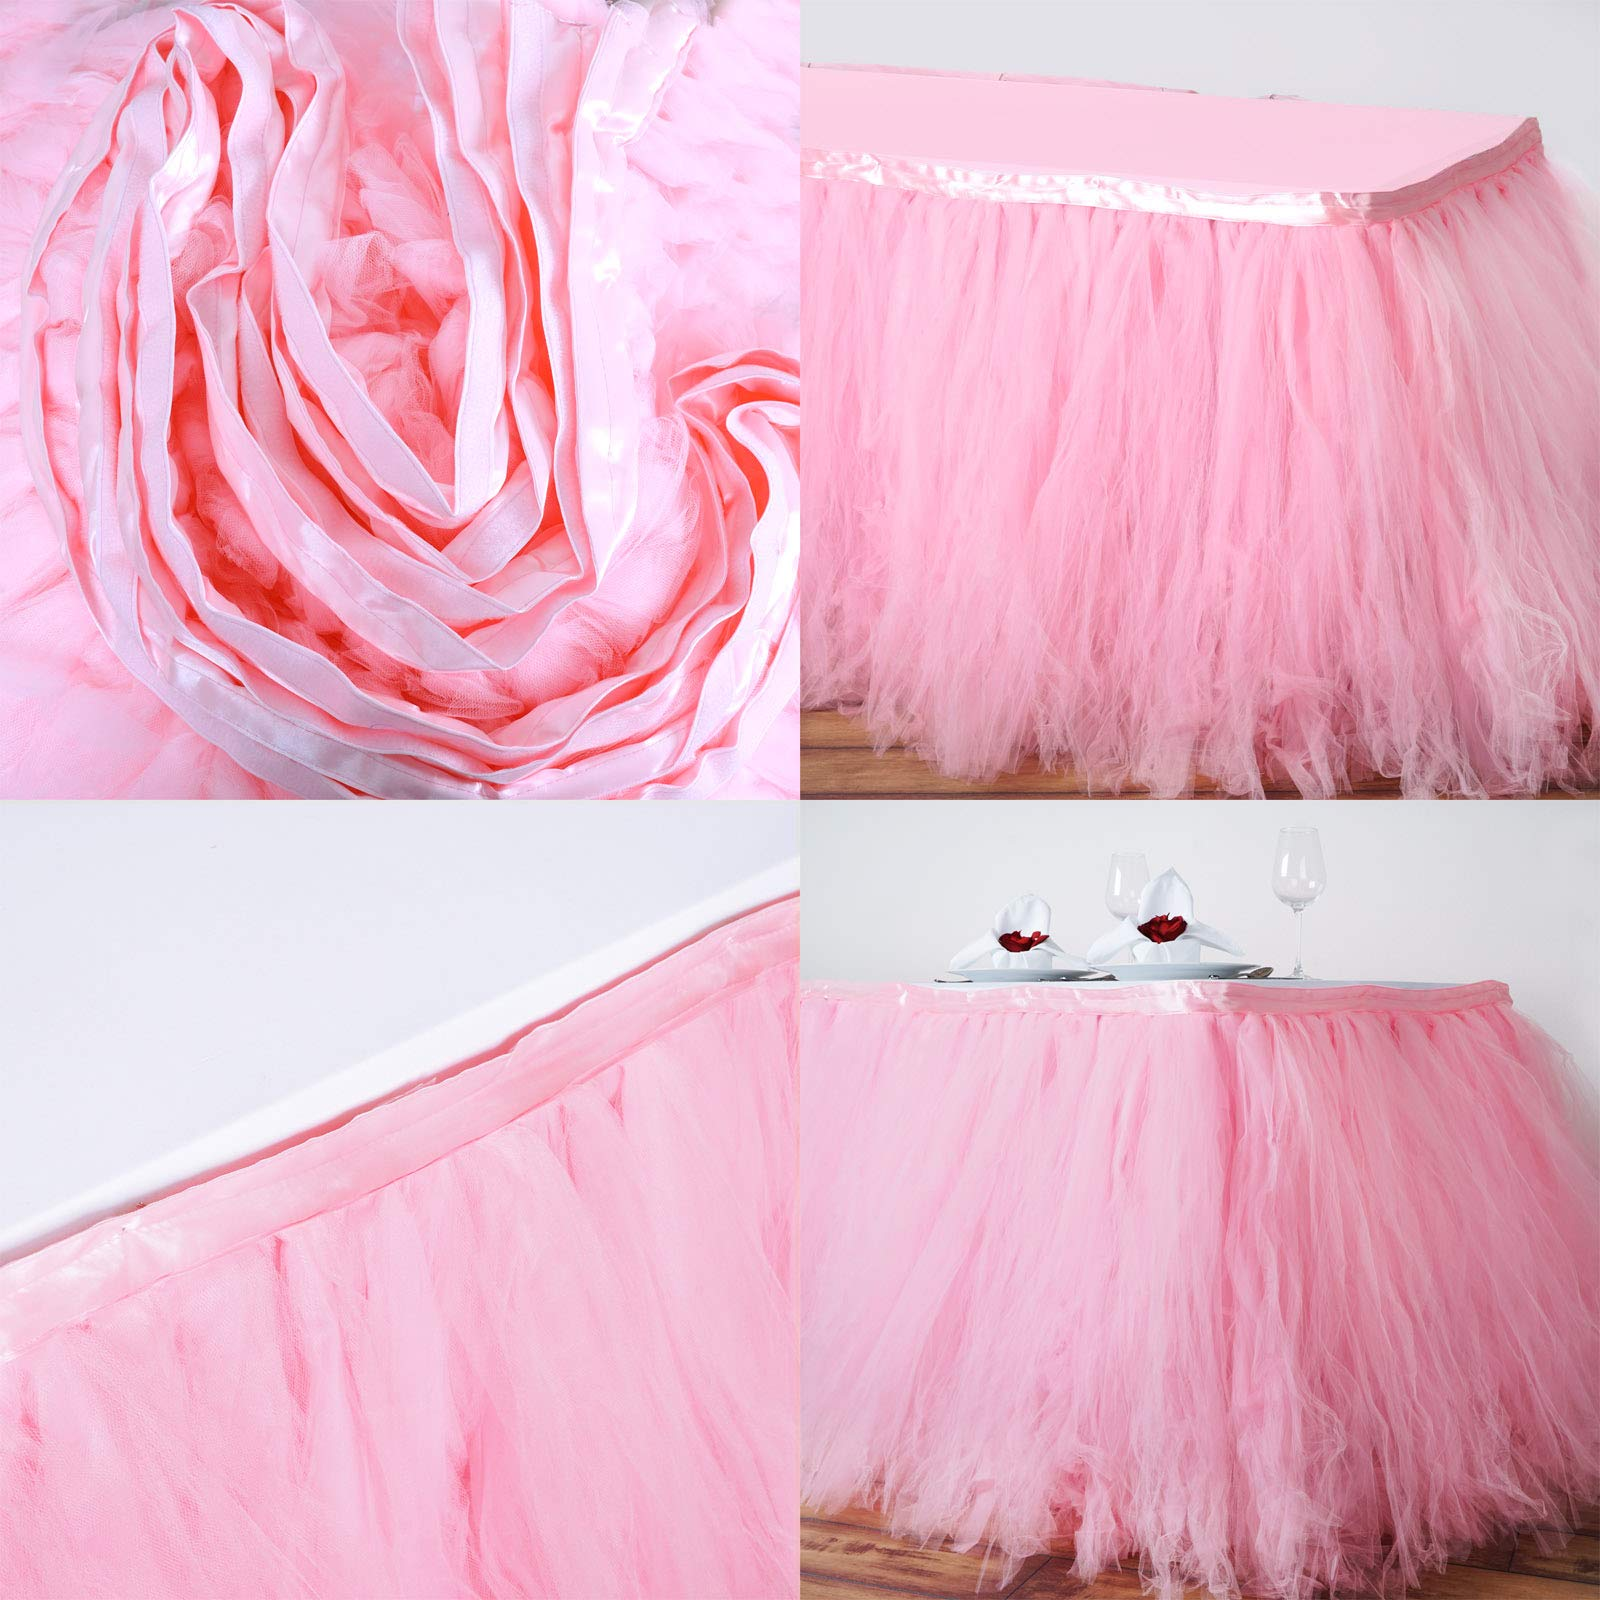 Tableclothsfactory 21ft FULL SIZE 8 Layer Fluffy Tulle - Tutu Table Skirt - Rose Quartz Pink by Tableclothsfactory (Image #3)